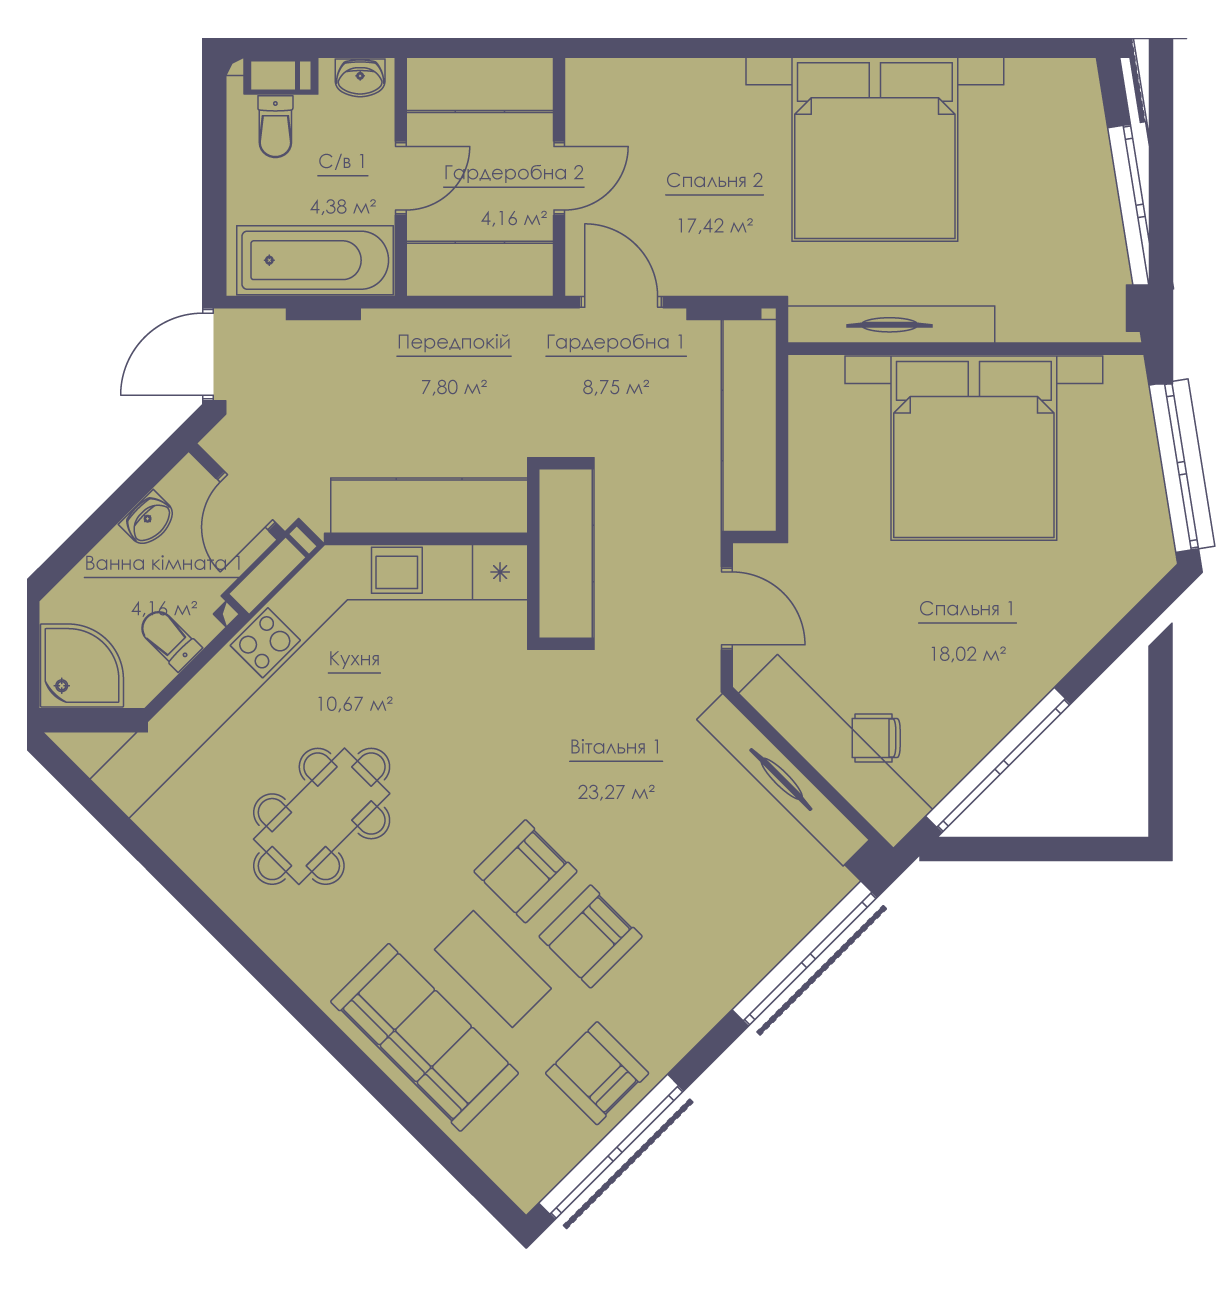 Apartment layout KV_156_3.3a_1_1_12-1